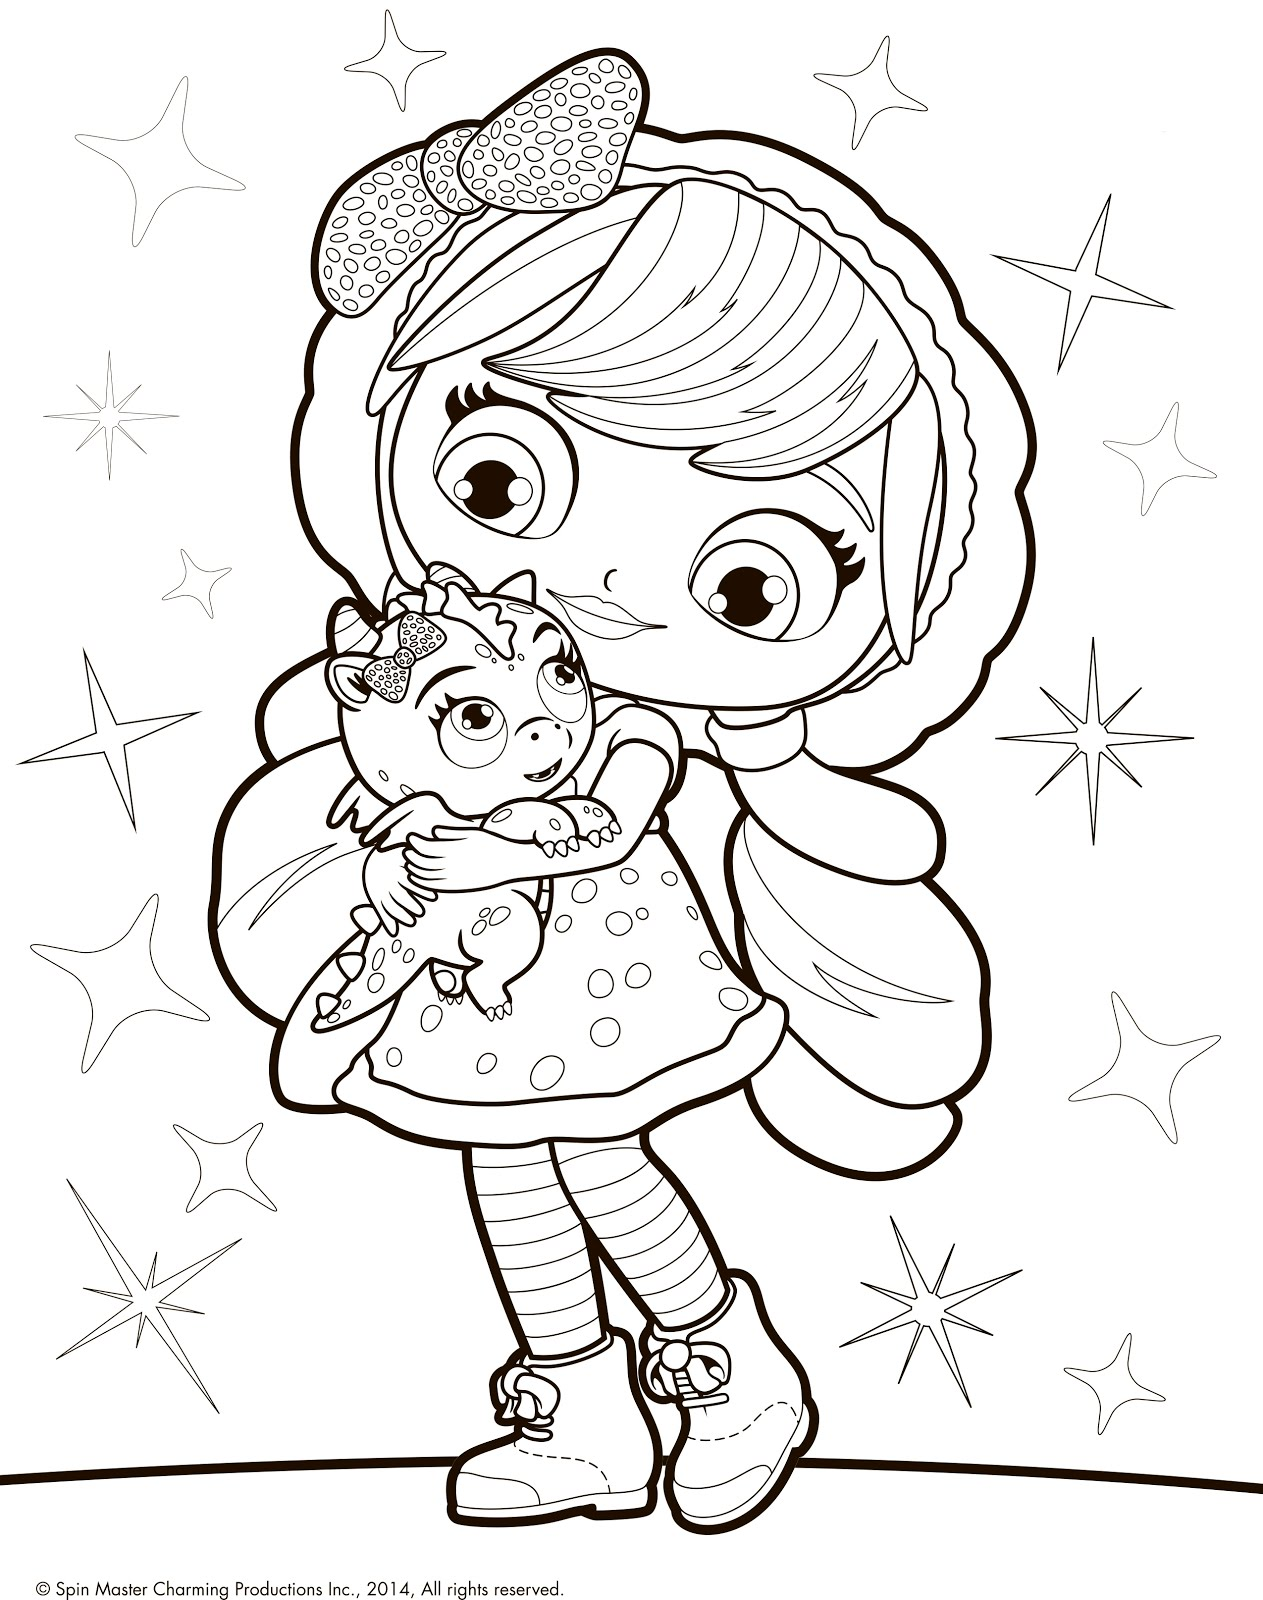 little charmers coloring pages printable - photo#20